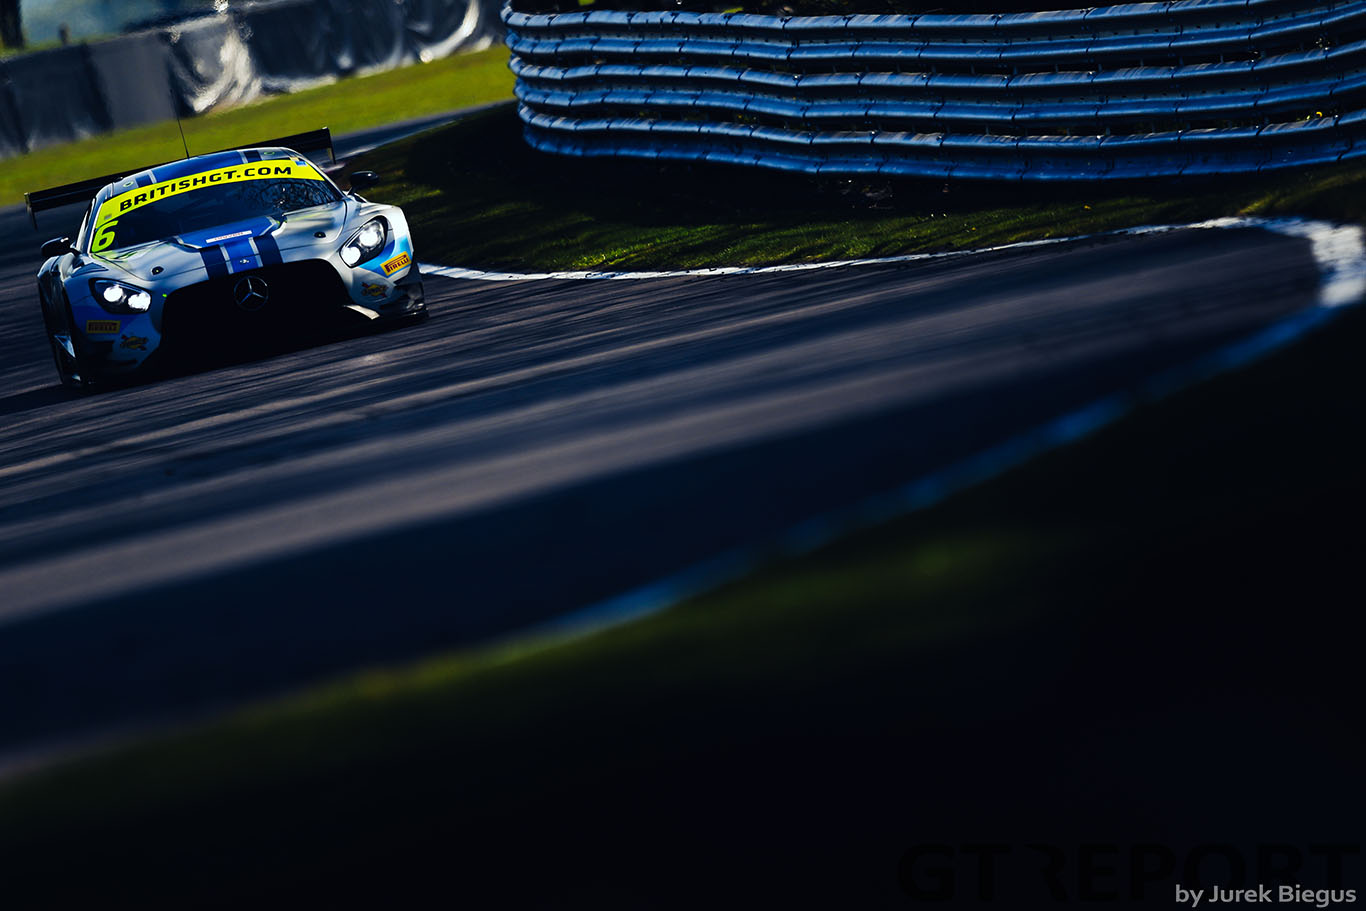 British GT Oulton Park: Ram Racing and Barwell share poles